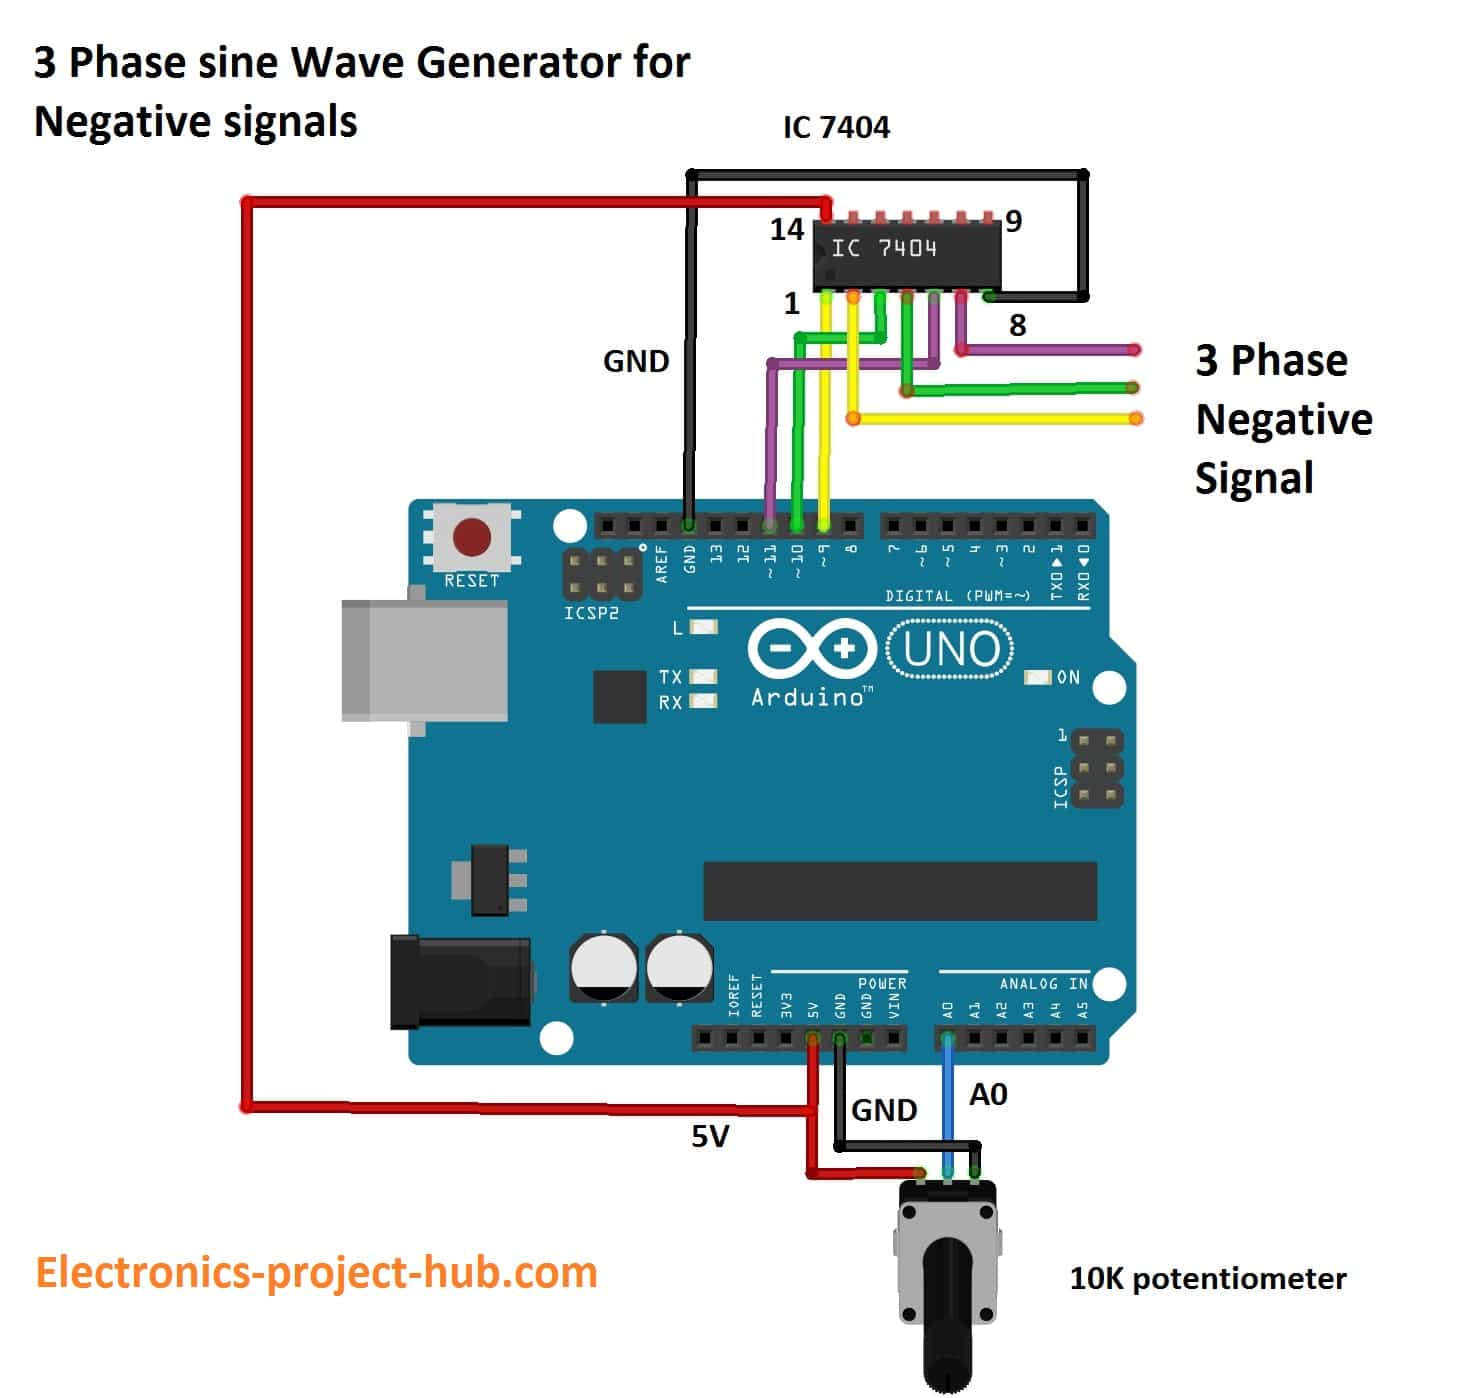 hight resolution of 3 phase sine wave generator code arduino diy electronics projects driving a threephase motor using arduino pwm outputs timing diagram